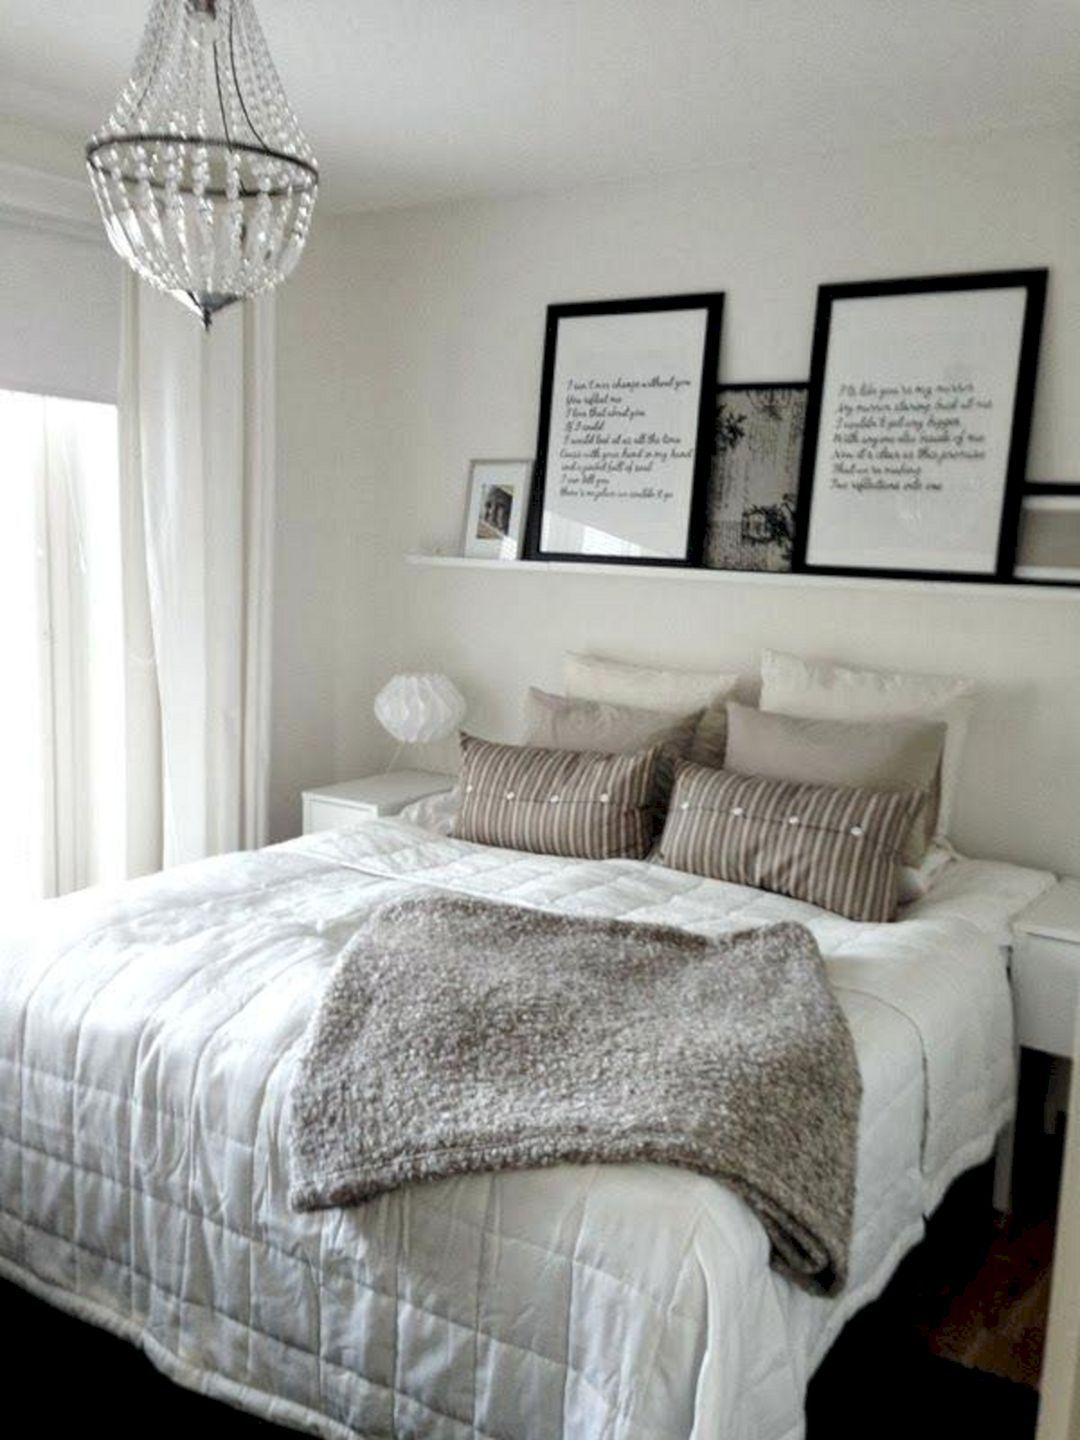 24 Beautiful Minimalist Bedroom Design Ideas For Small Spaces Teracee Small Room Bedroom Minimalist Bedroom Design Luxurious Bedrooms